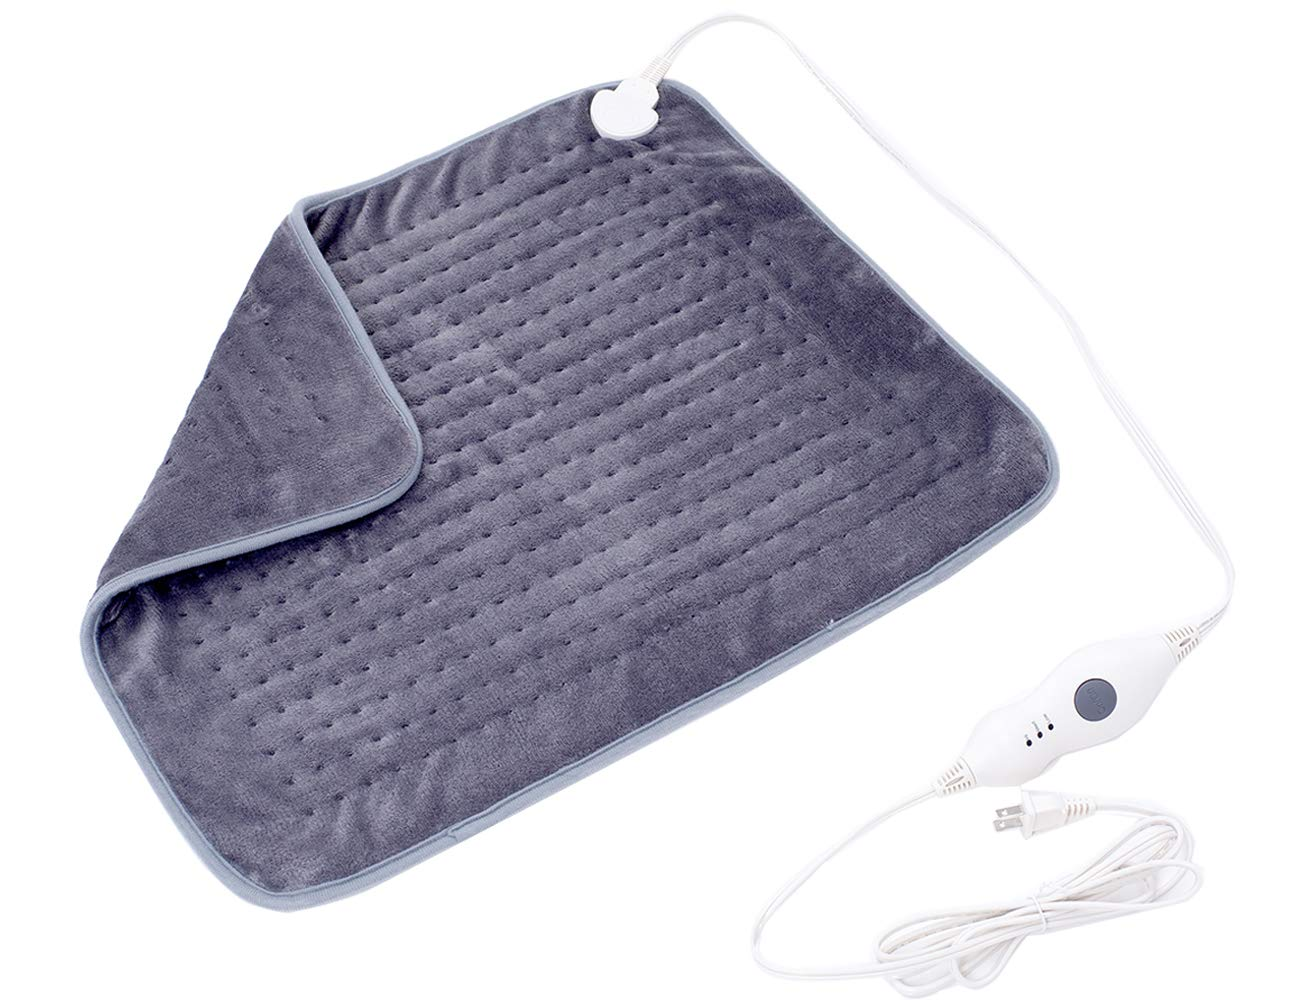 Mosabo Electric Heating Pad XXL 20X24 inches Soft Flannel Large Heat Therapy for Back Pain 3 Temperature Setting with Auto Shut Off Gray